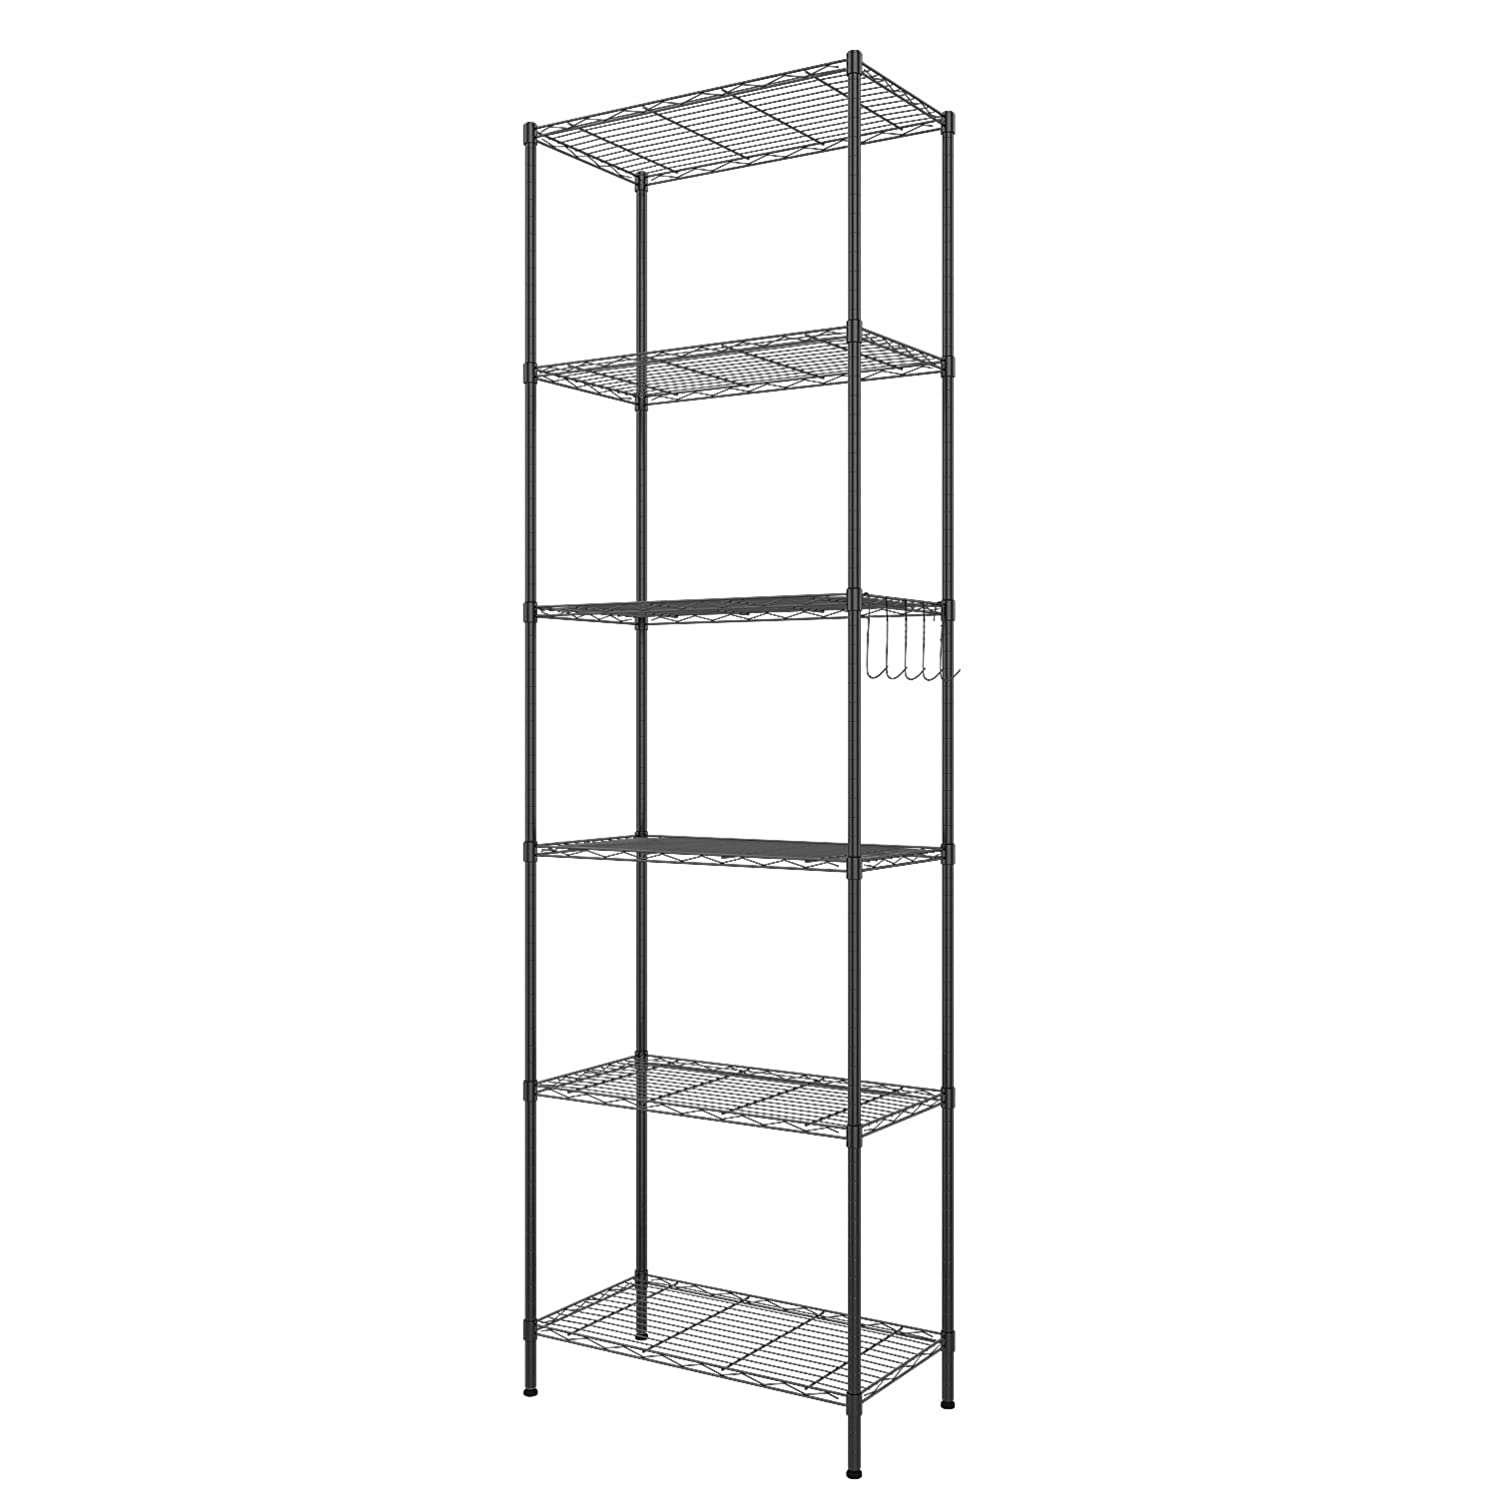 Homdox 6-Tier Storage Shelf Wire Shelving Unit Free Standing Rack Organization Adjustable Leveling Feet, Stainless Side Hooks, Black